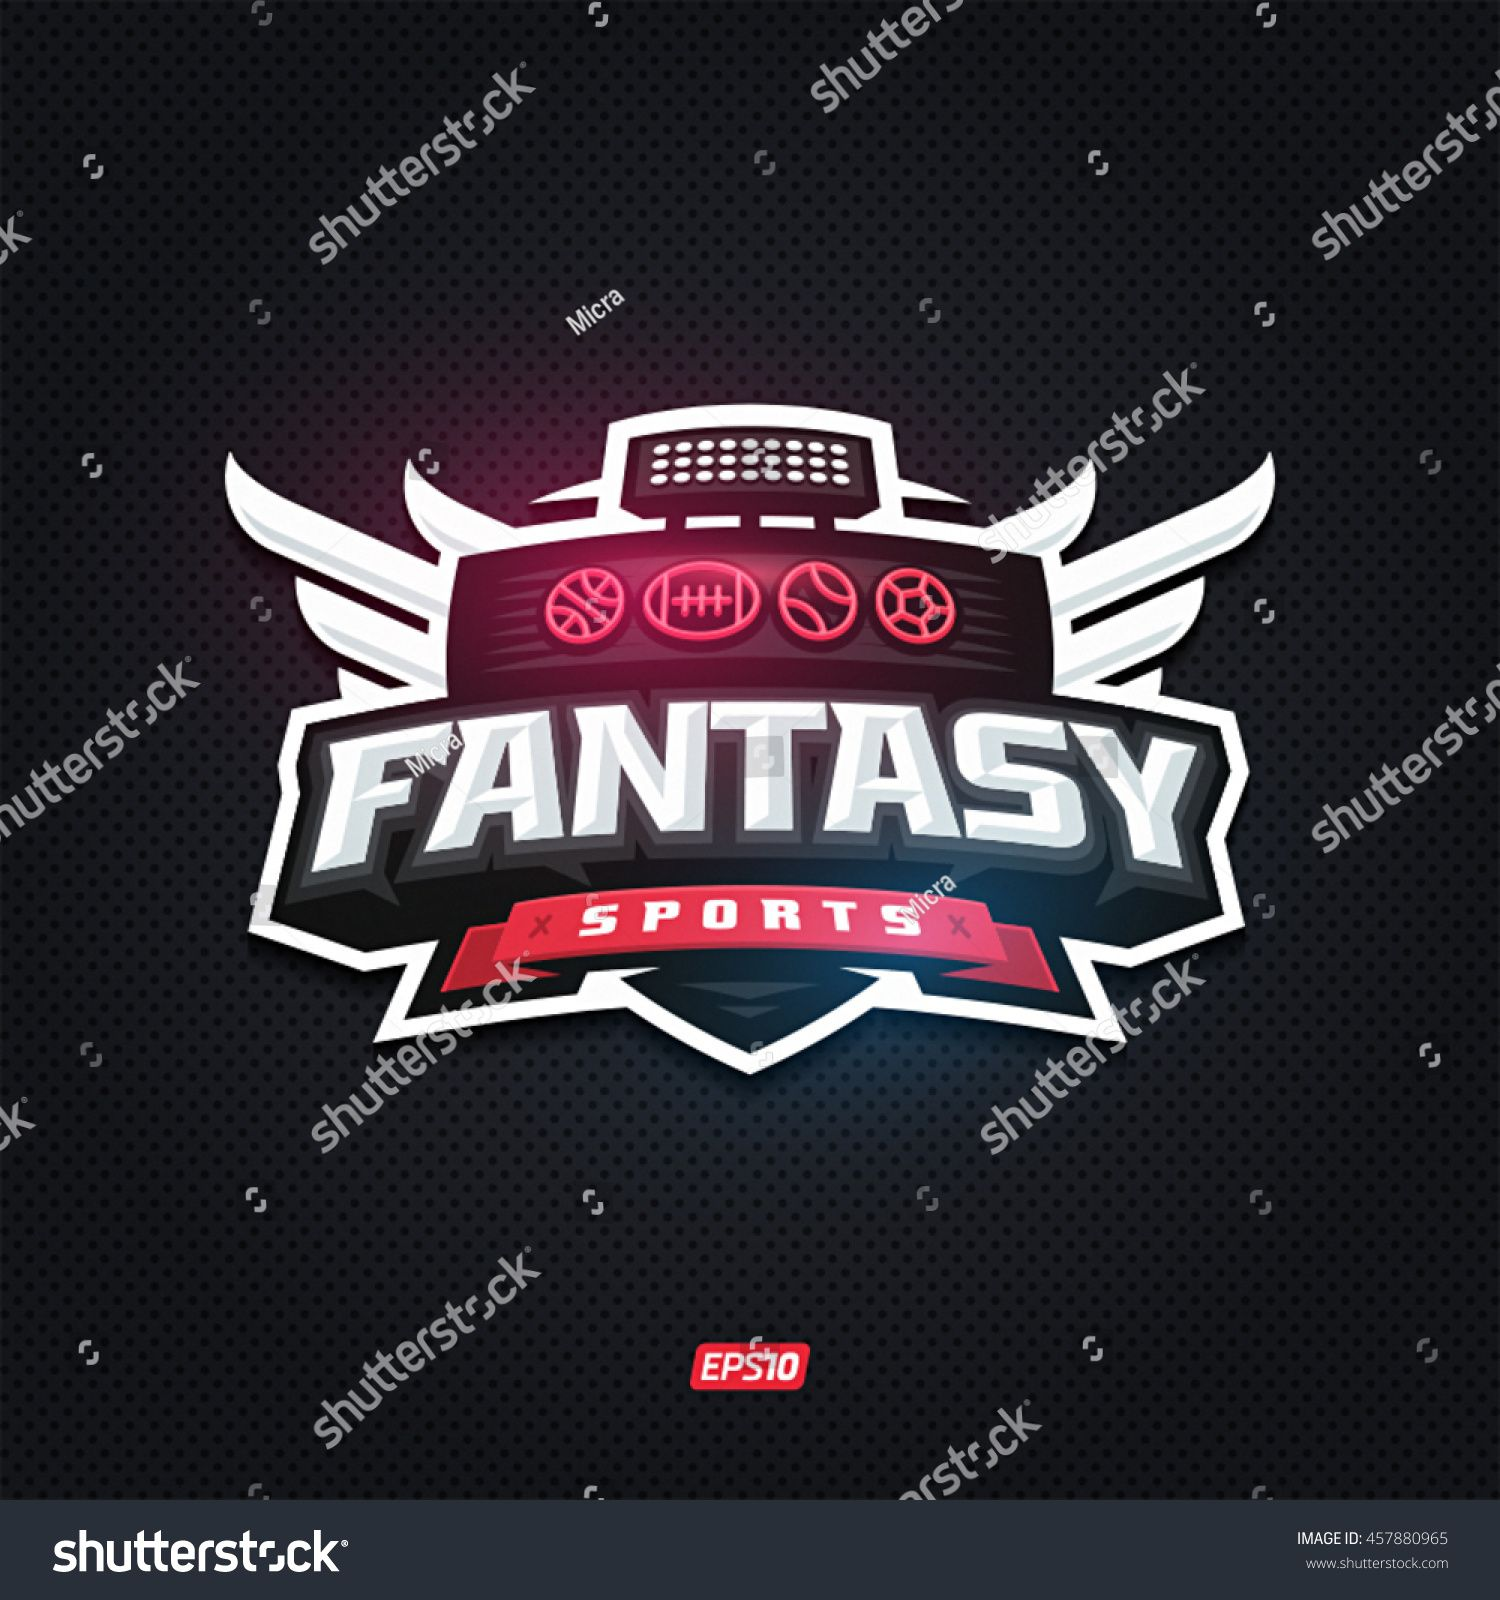 shutterstock fantasy sports logo Sports templates